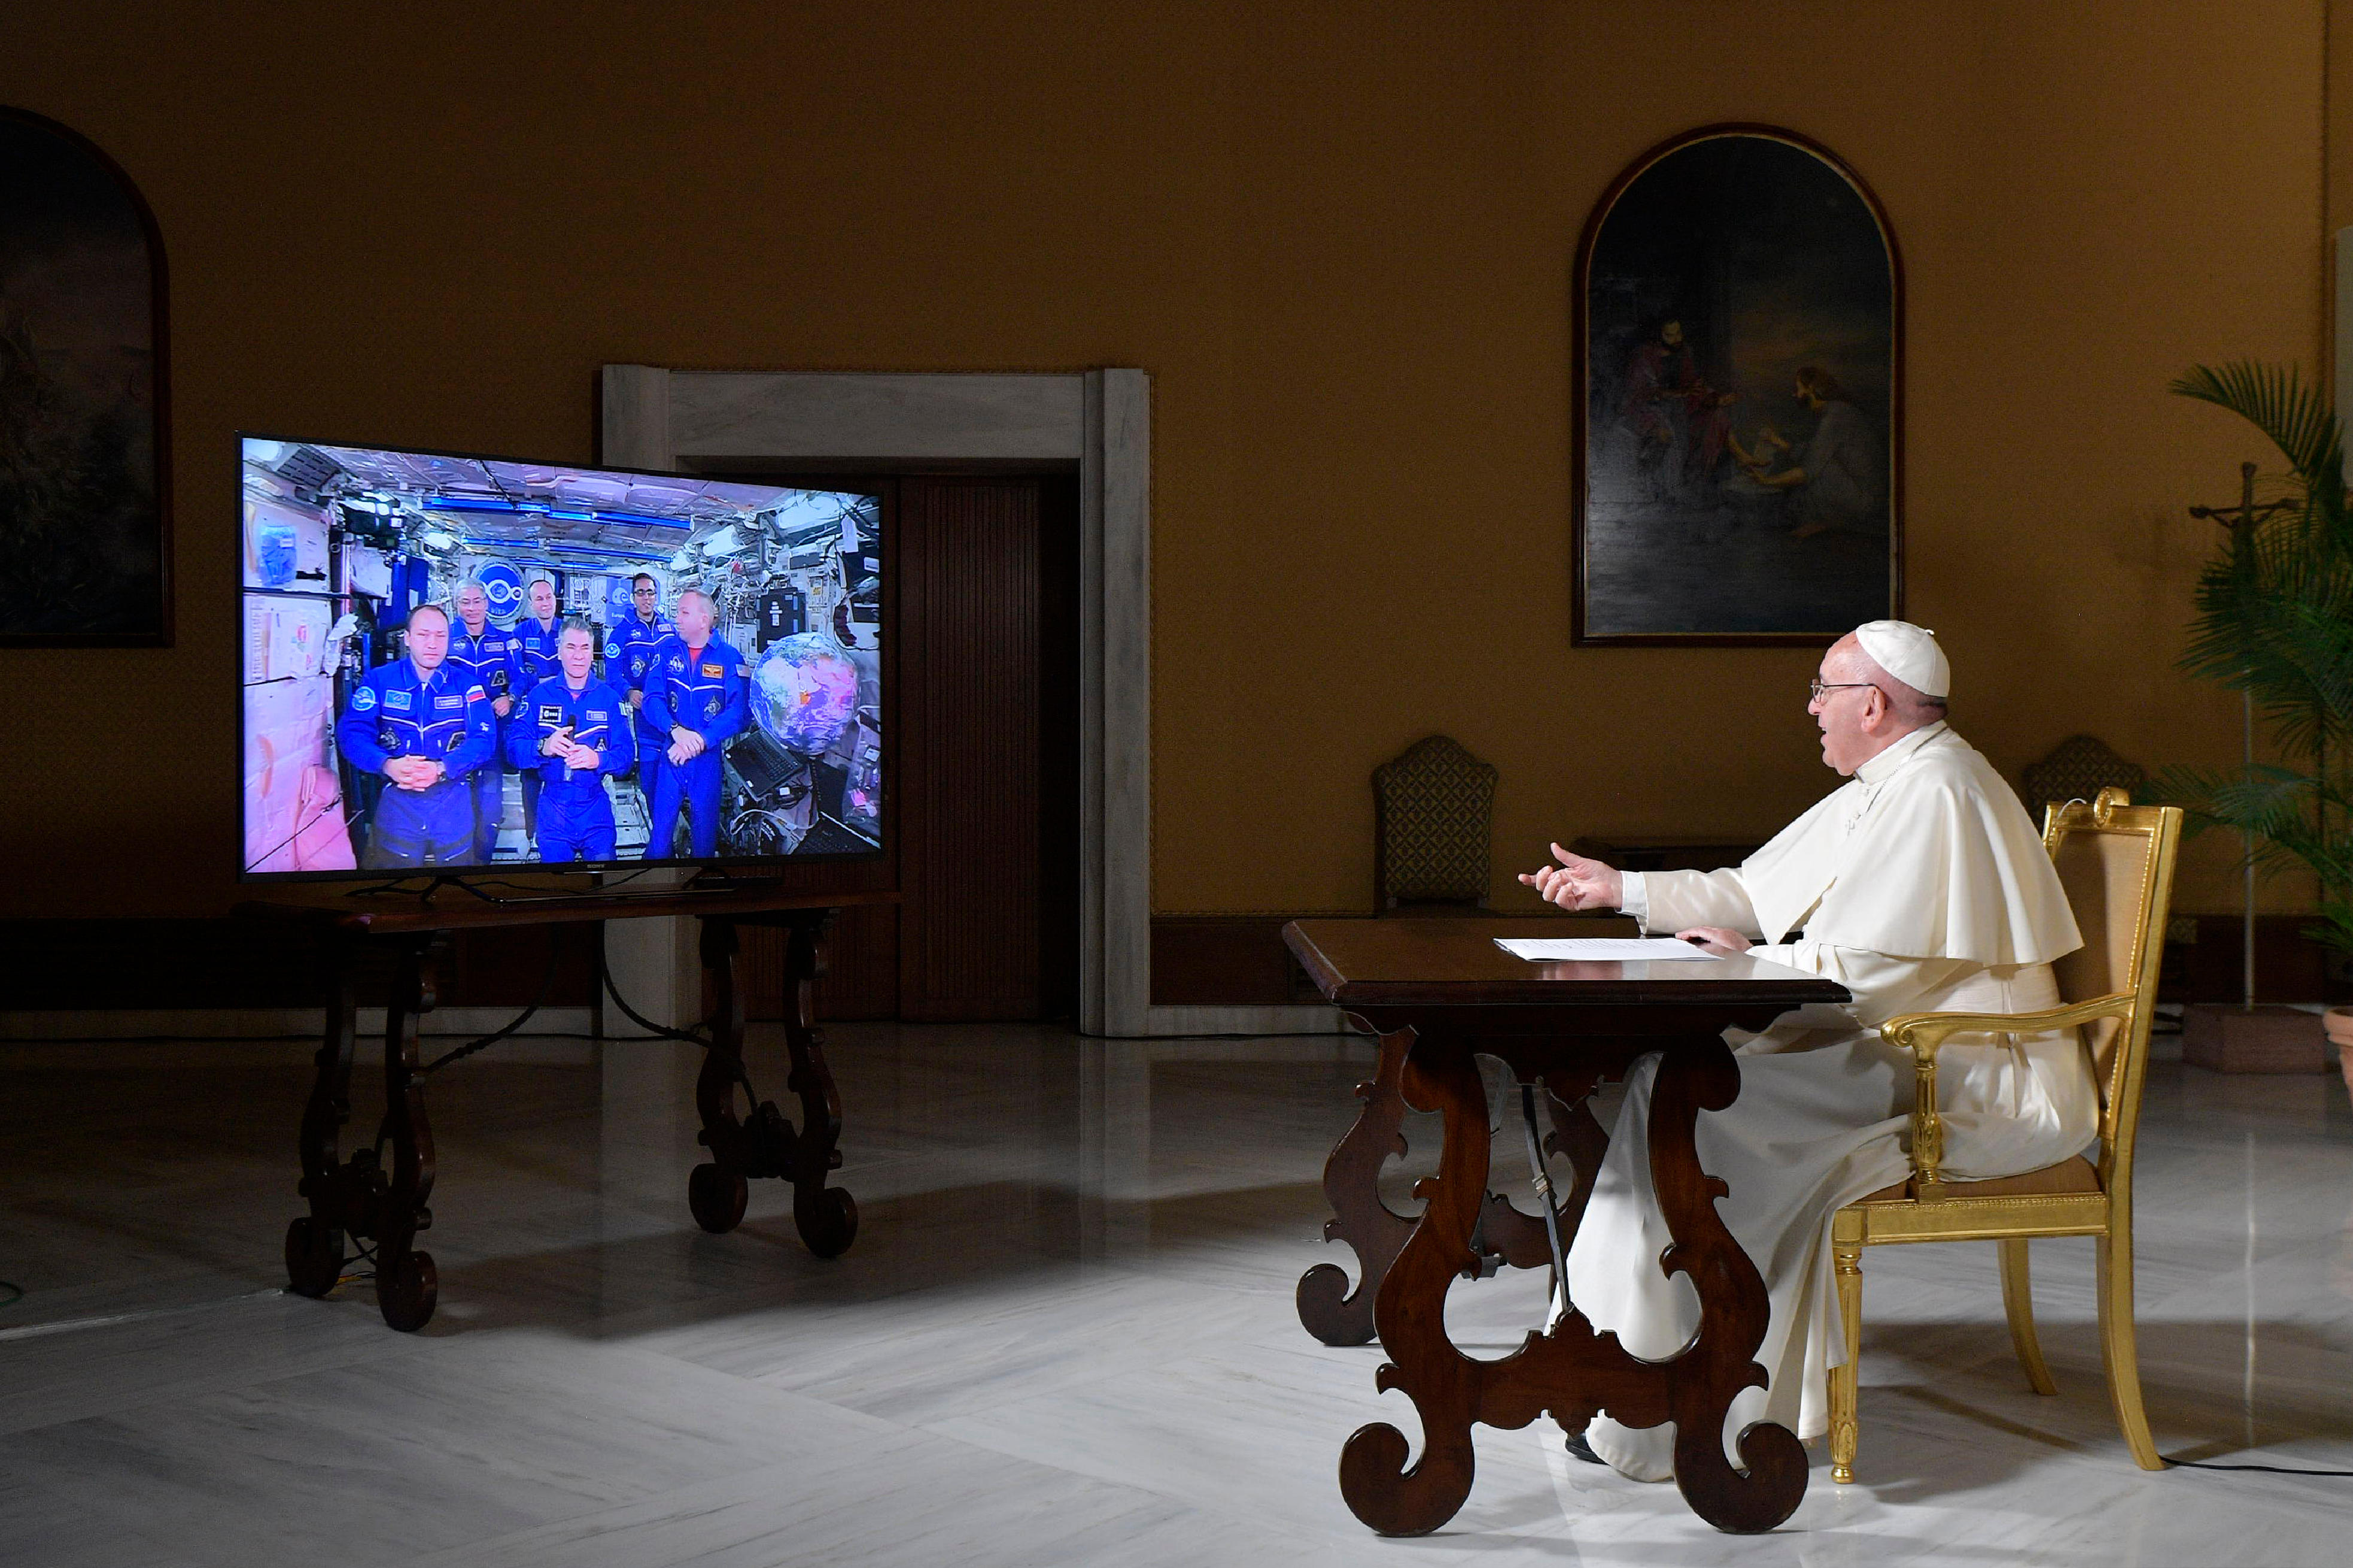 POPE ISS